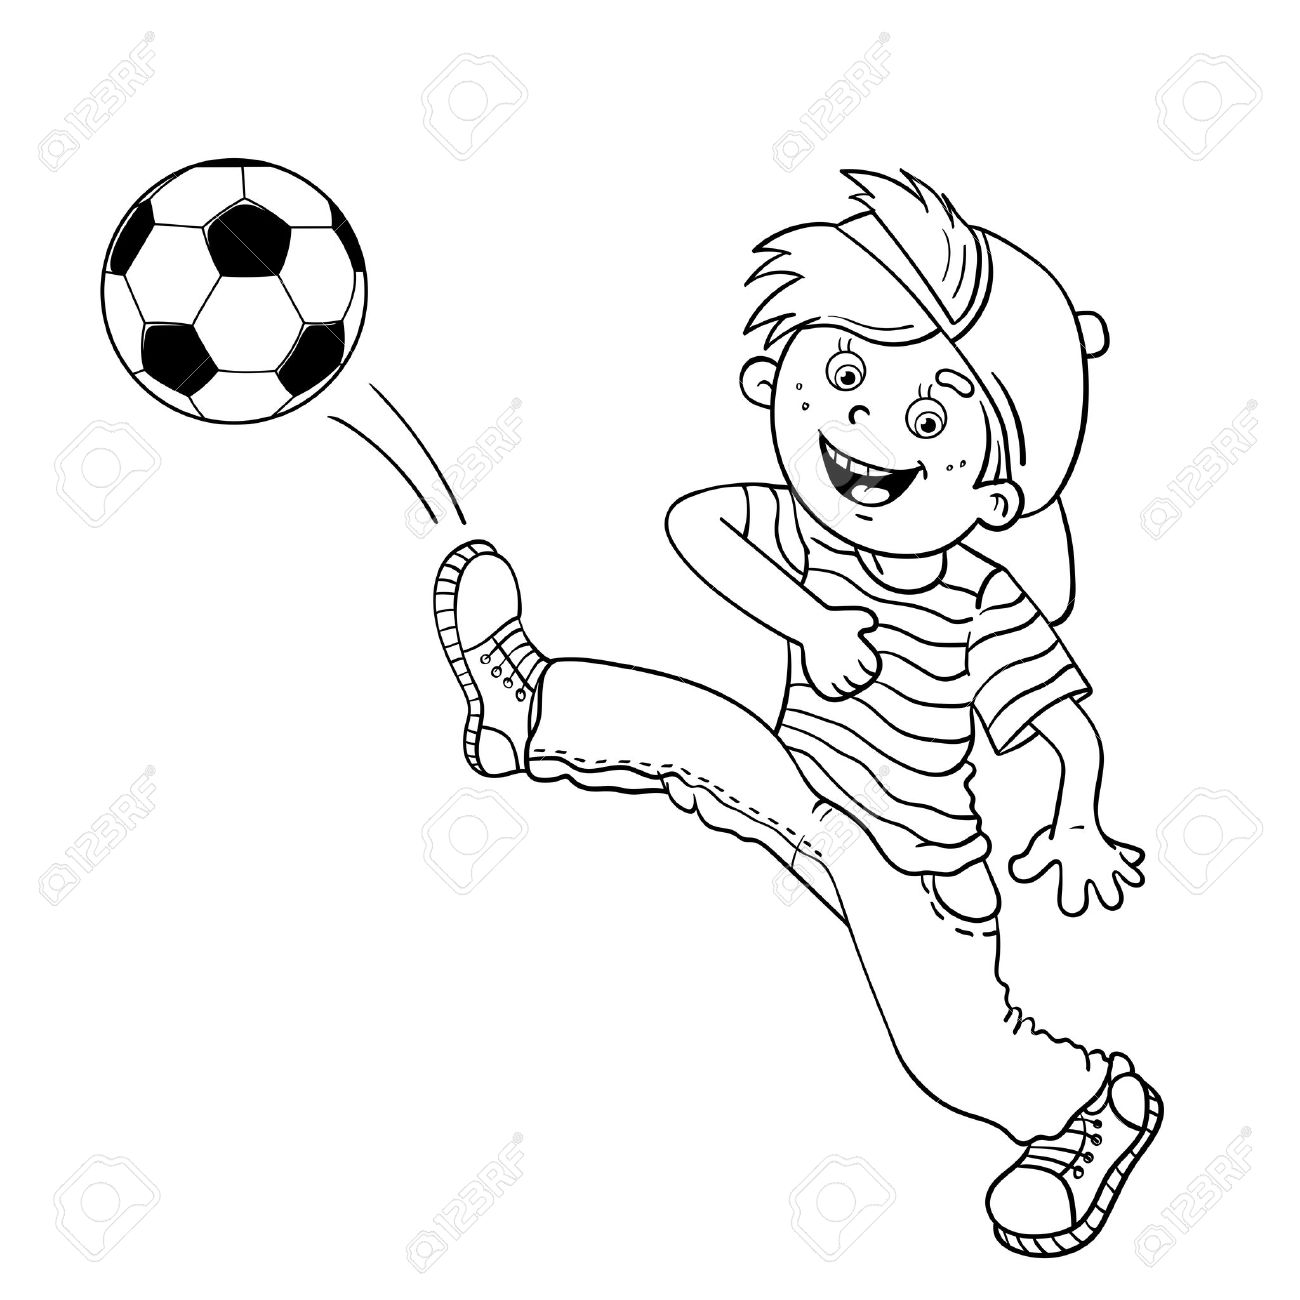 1300x1300 Coloring Page Outline Of A Cartoon Boy Kicking A Soccer Ball